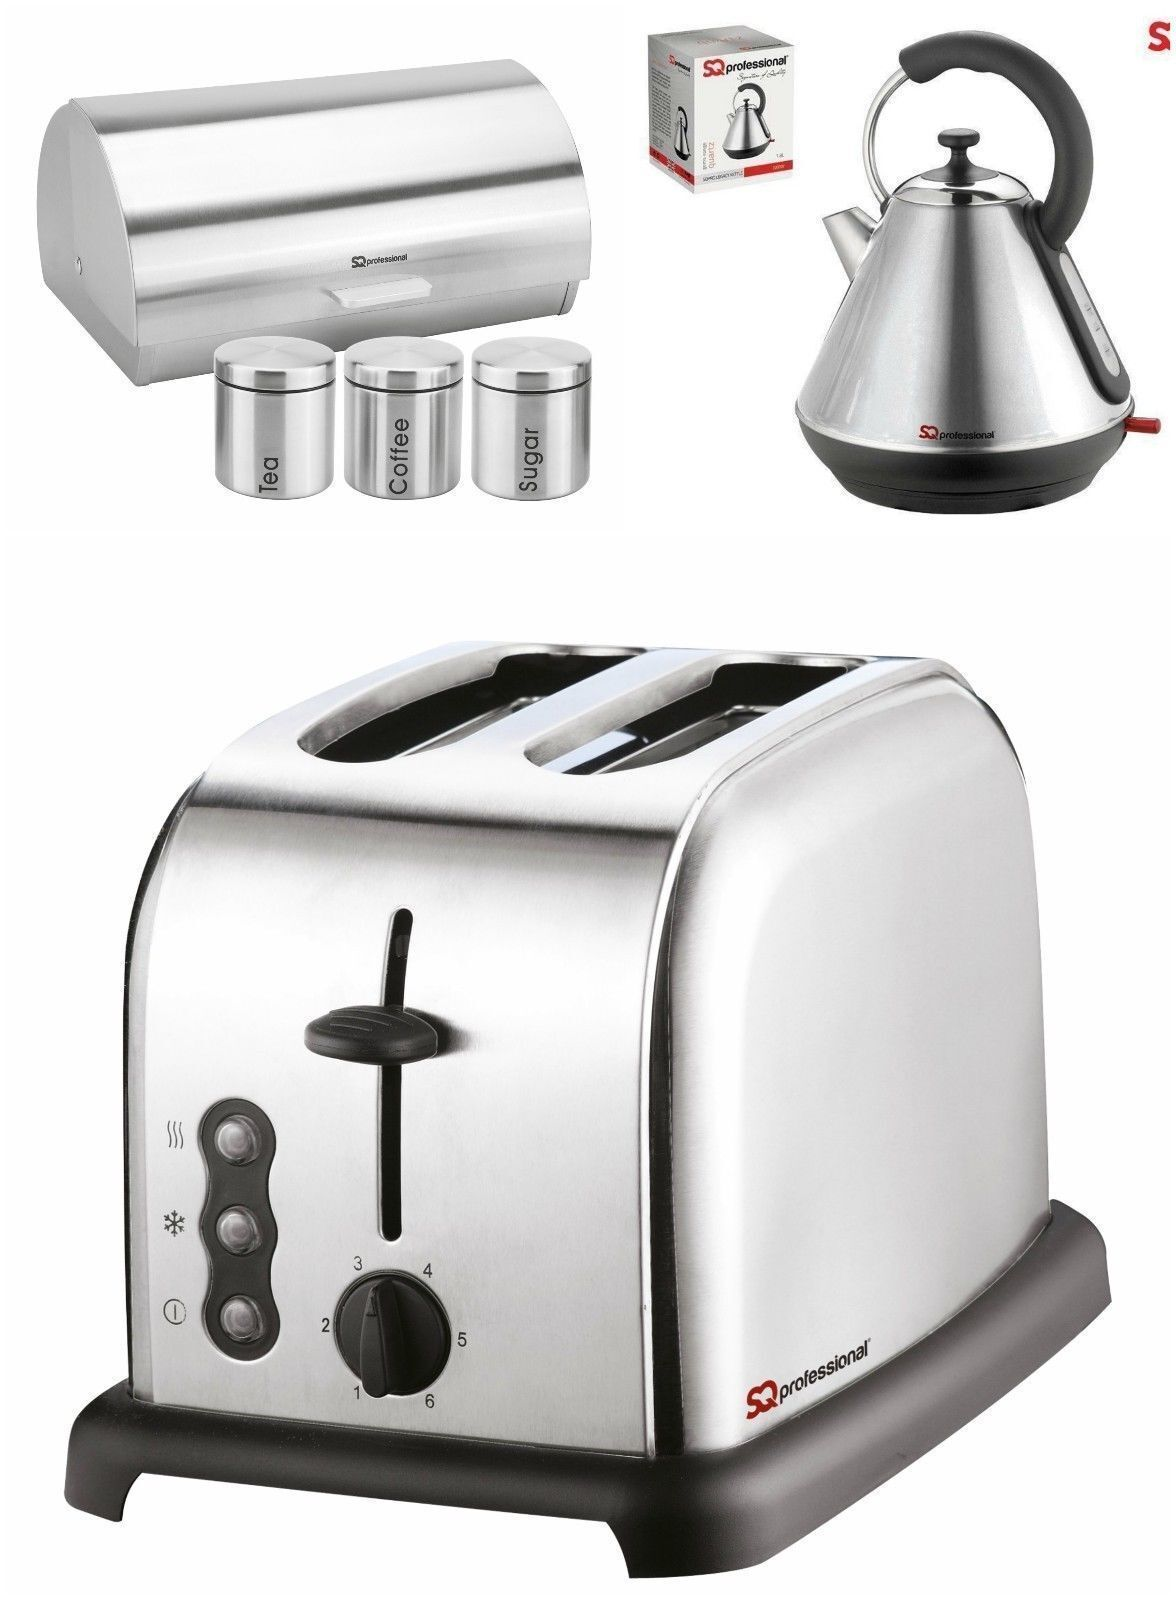 Sq Pro Metallic Range 6pc set  Kettle Toaster  BreadBin with 3 Canisters